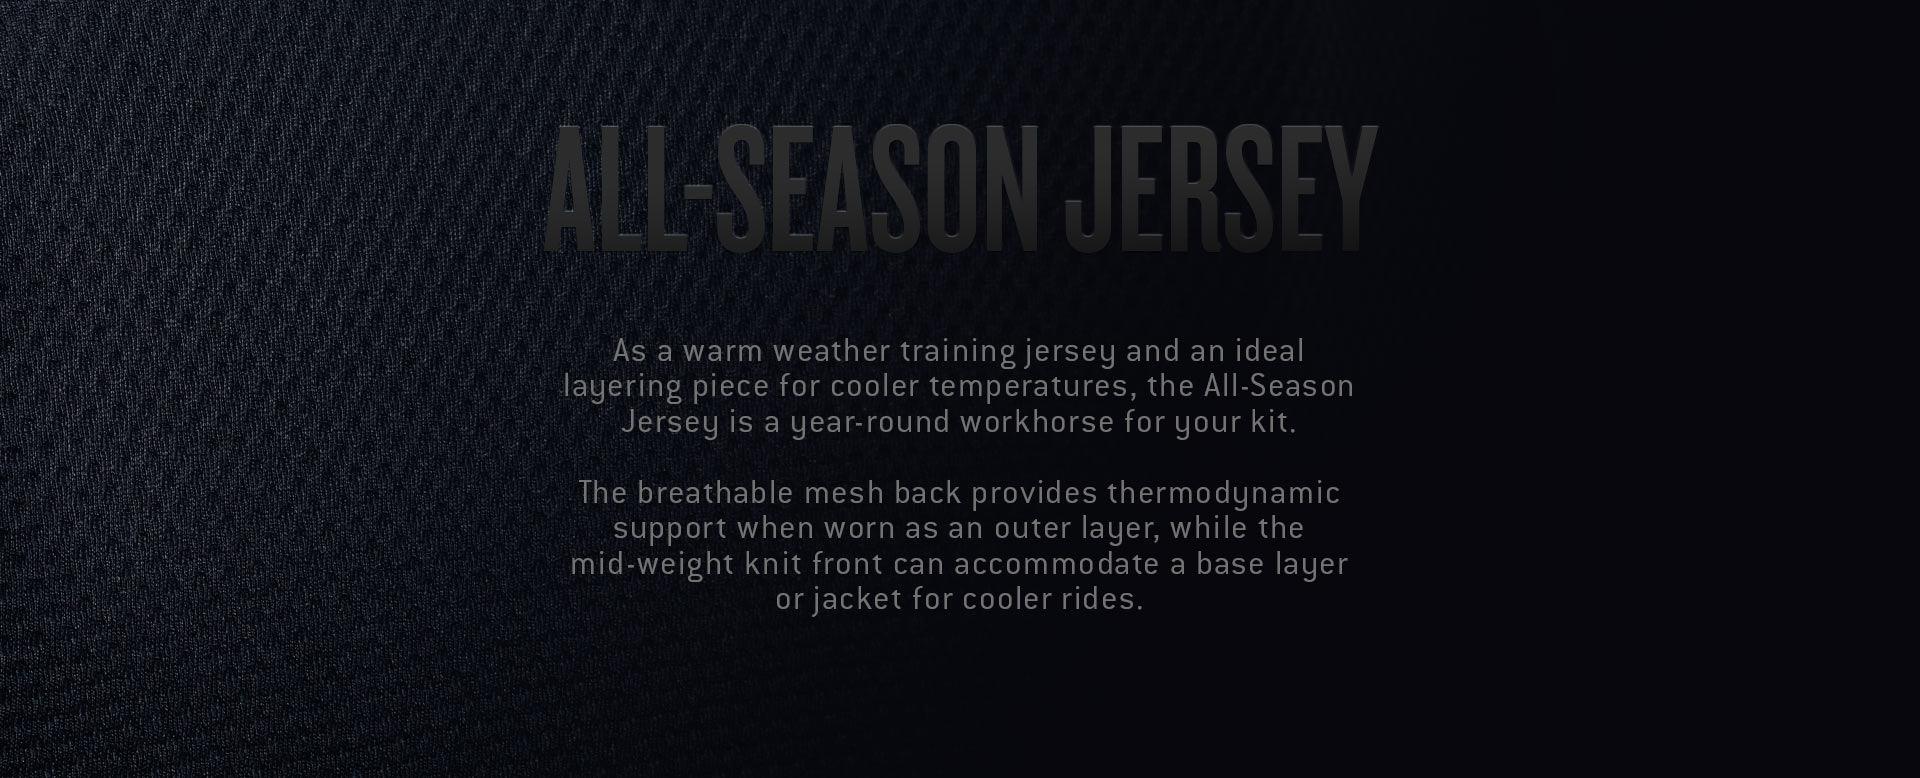 Men's Cycling All-Season Jersey